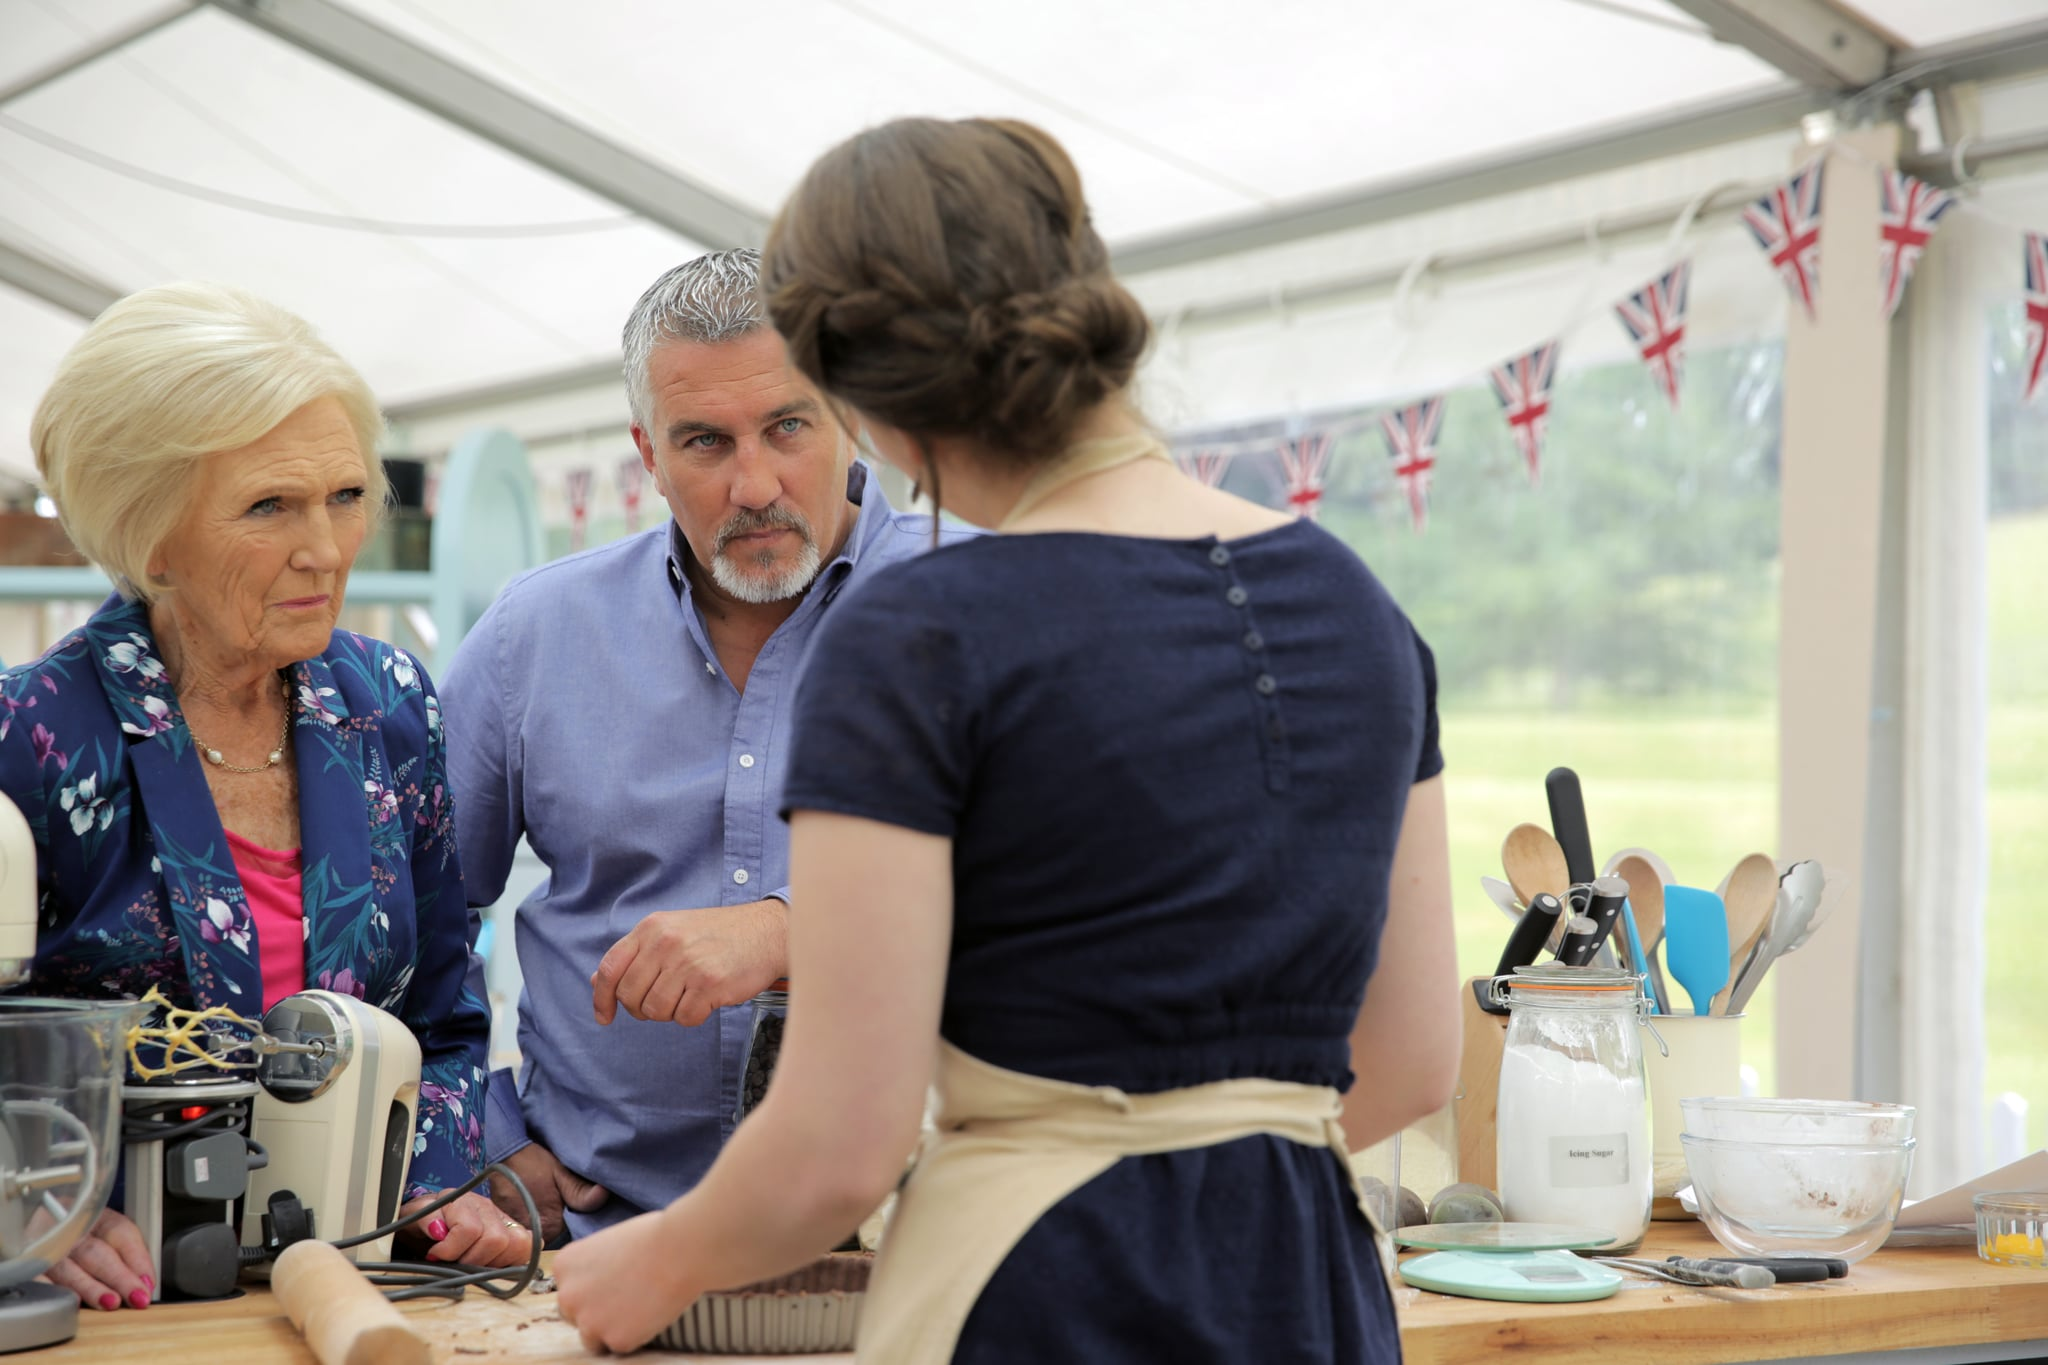 THE GREAT BRITISH BAKE OFF (aka THE GREAT BRITISH BAKING SHOW), from left: judges Mary Berry, Paul Hollywood, Flora Shedden (back to camera), 'Episode 9: Chocolate', (Series 6, ep. 609, originally aired in U.K. on Sept. 30, 2015). photo: PBS/Love Productions / Courtesy: Everett Collection